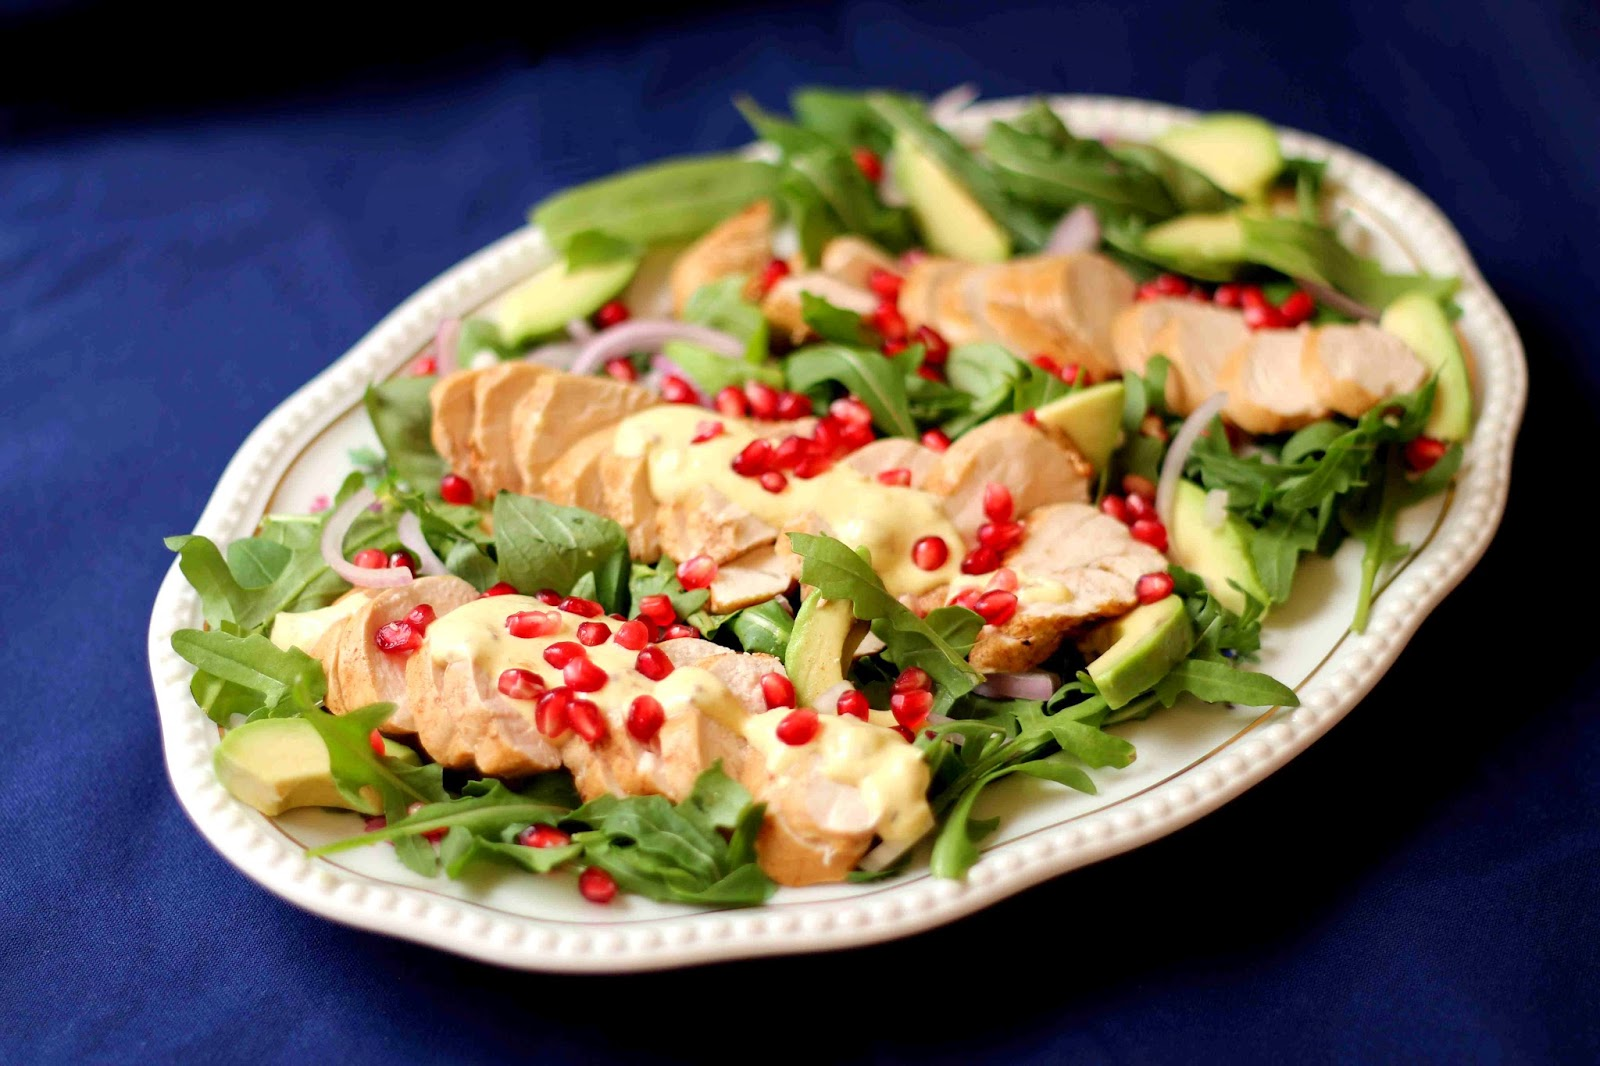 Spoon over the dressing and sprinkle over pomegranate seeds.